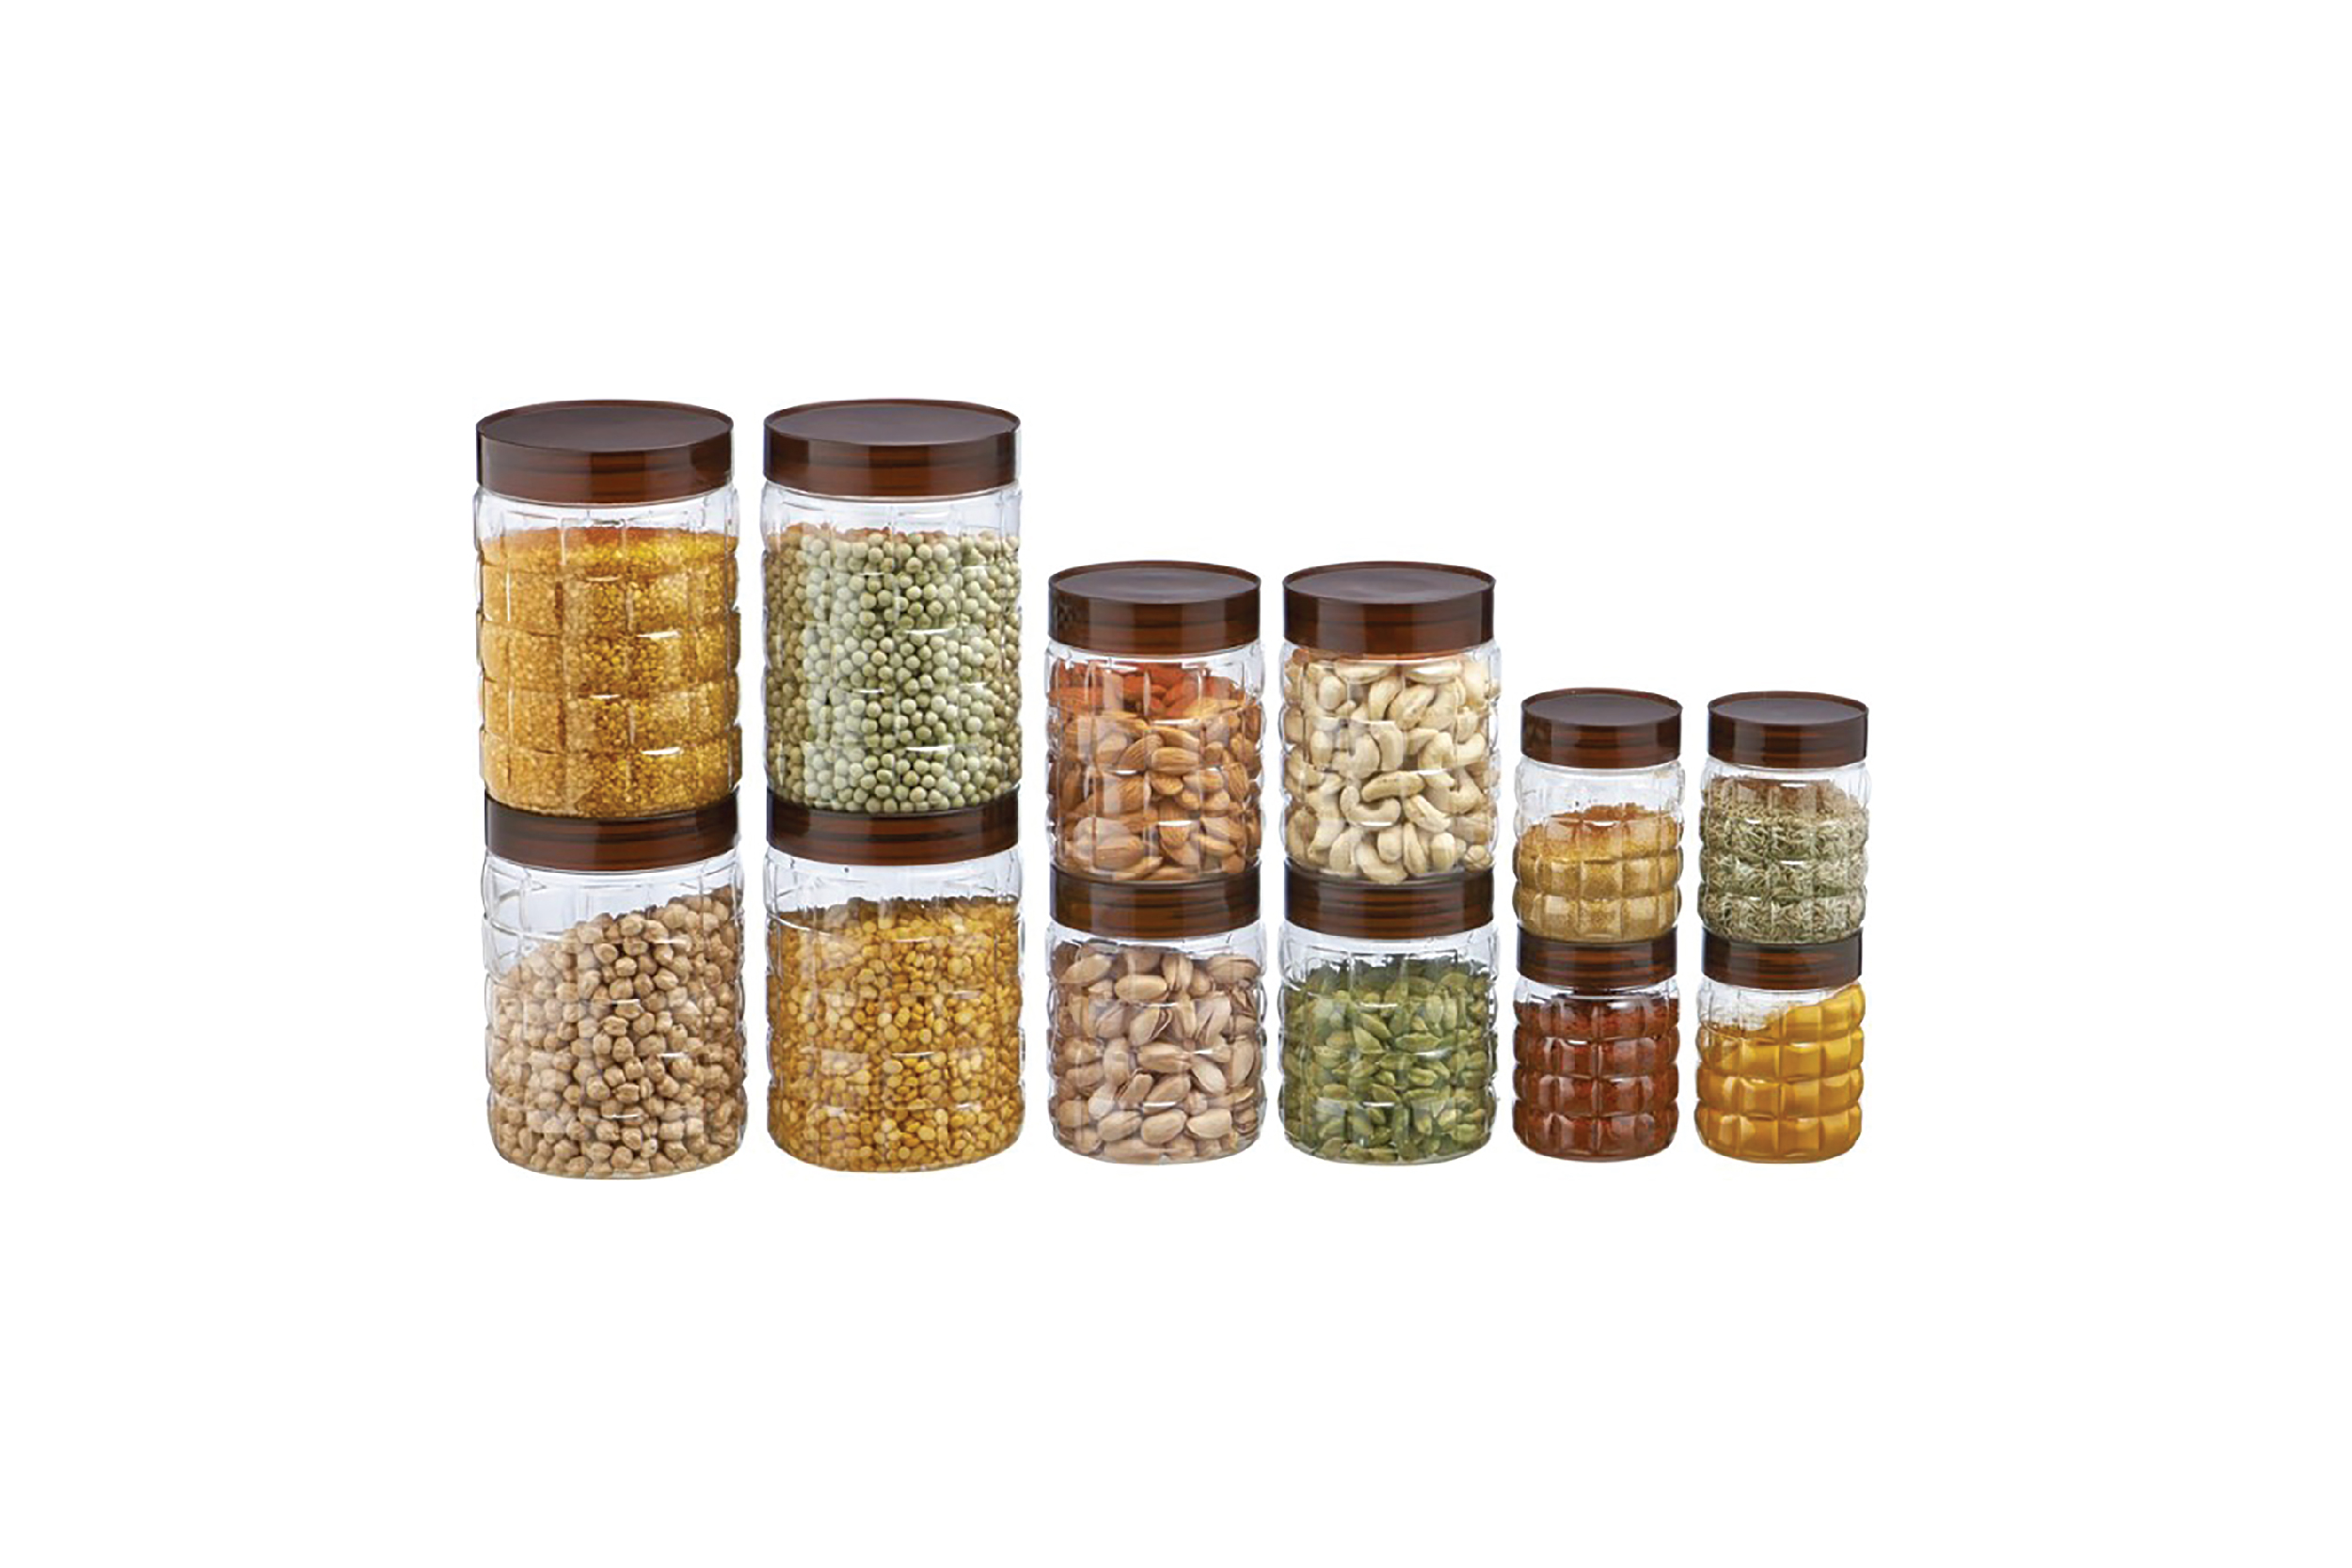 Steelo Steelo 12 pcs PET Container Set - 300ml x 4, 600ml x 4, 1200ml x 4 (Solitaire) - 300 ml, 600 ml, 1200 ml Plastic Food Storage